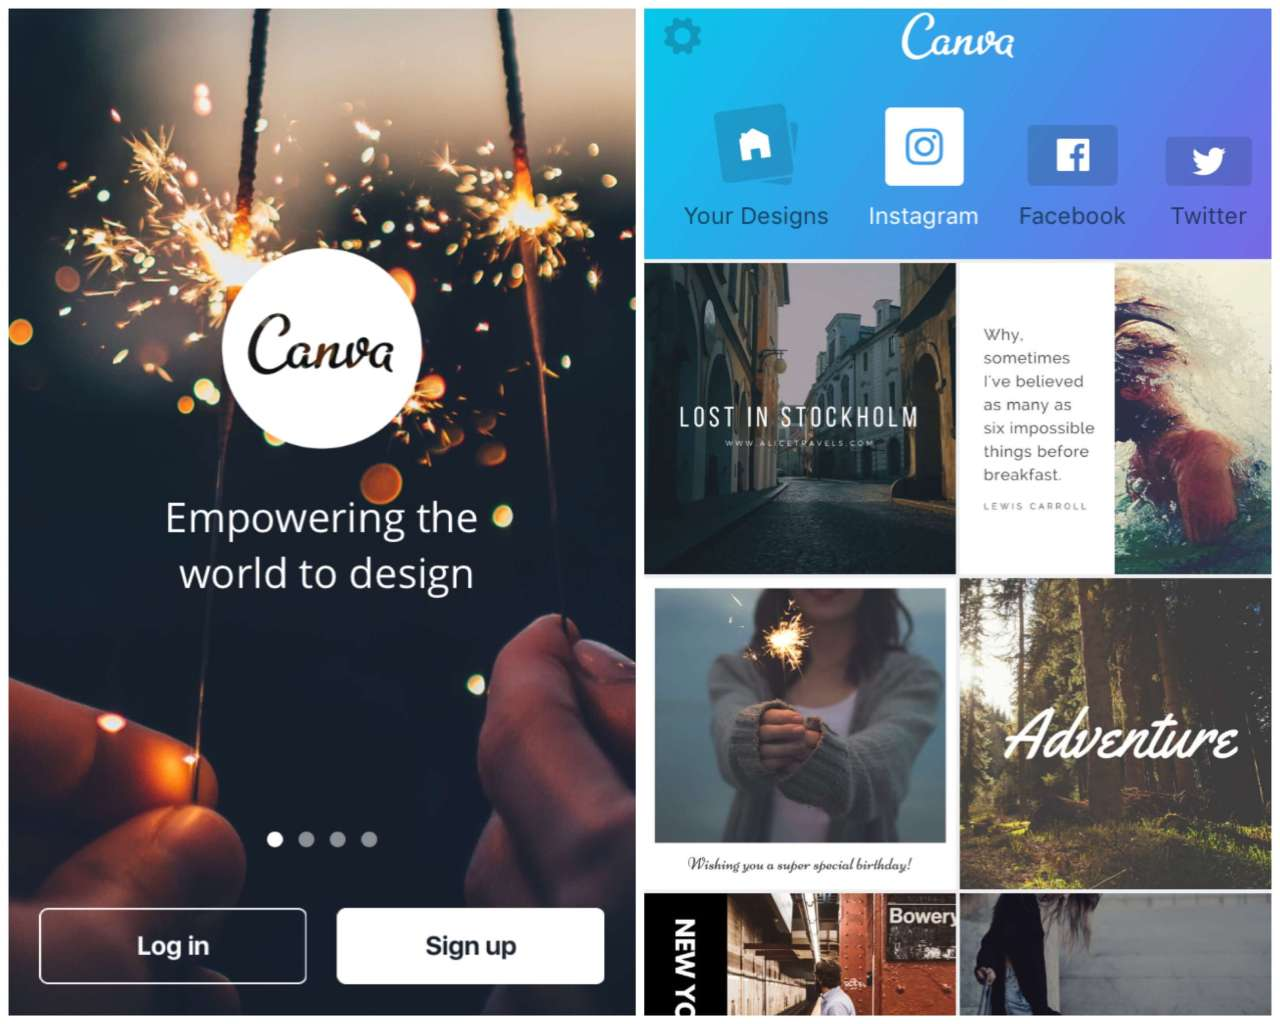 Canva for iPhone | App Review | The Design Jedi